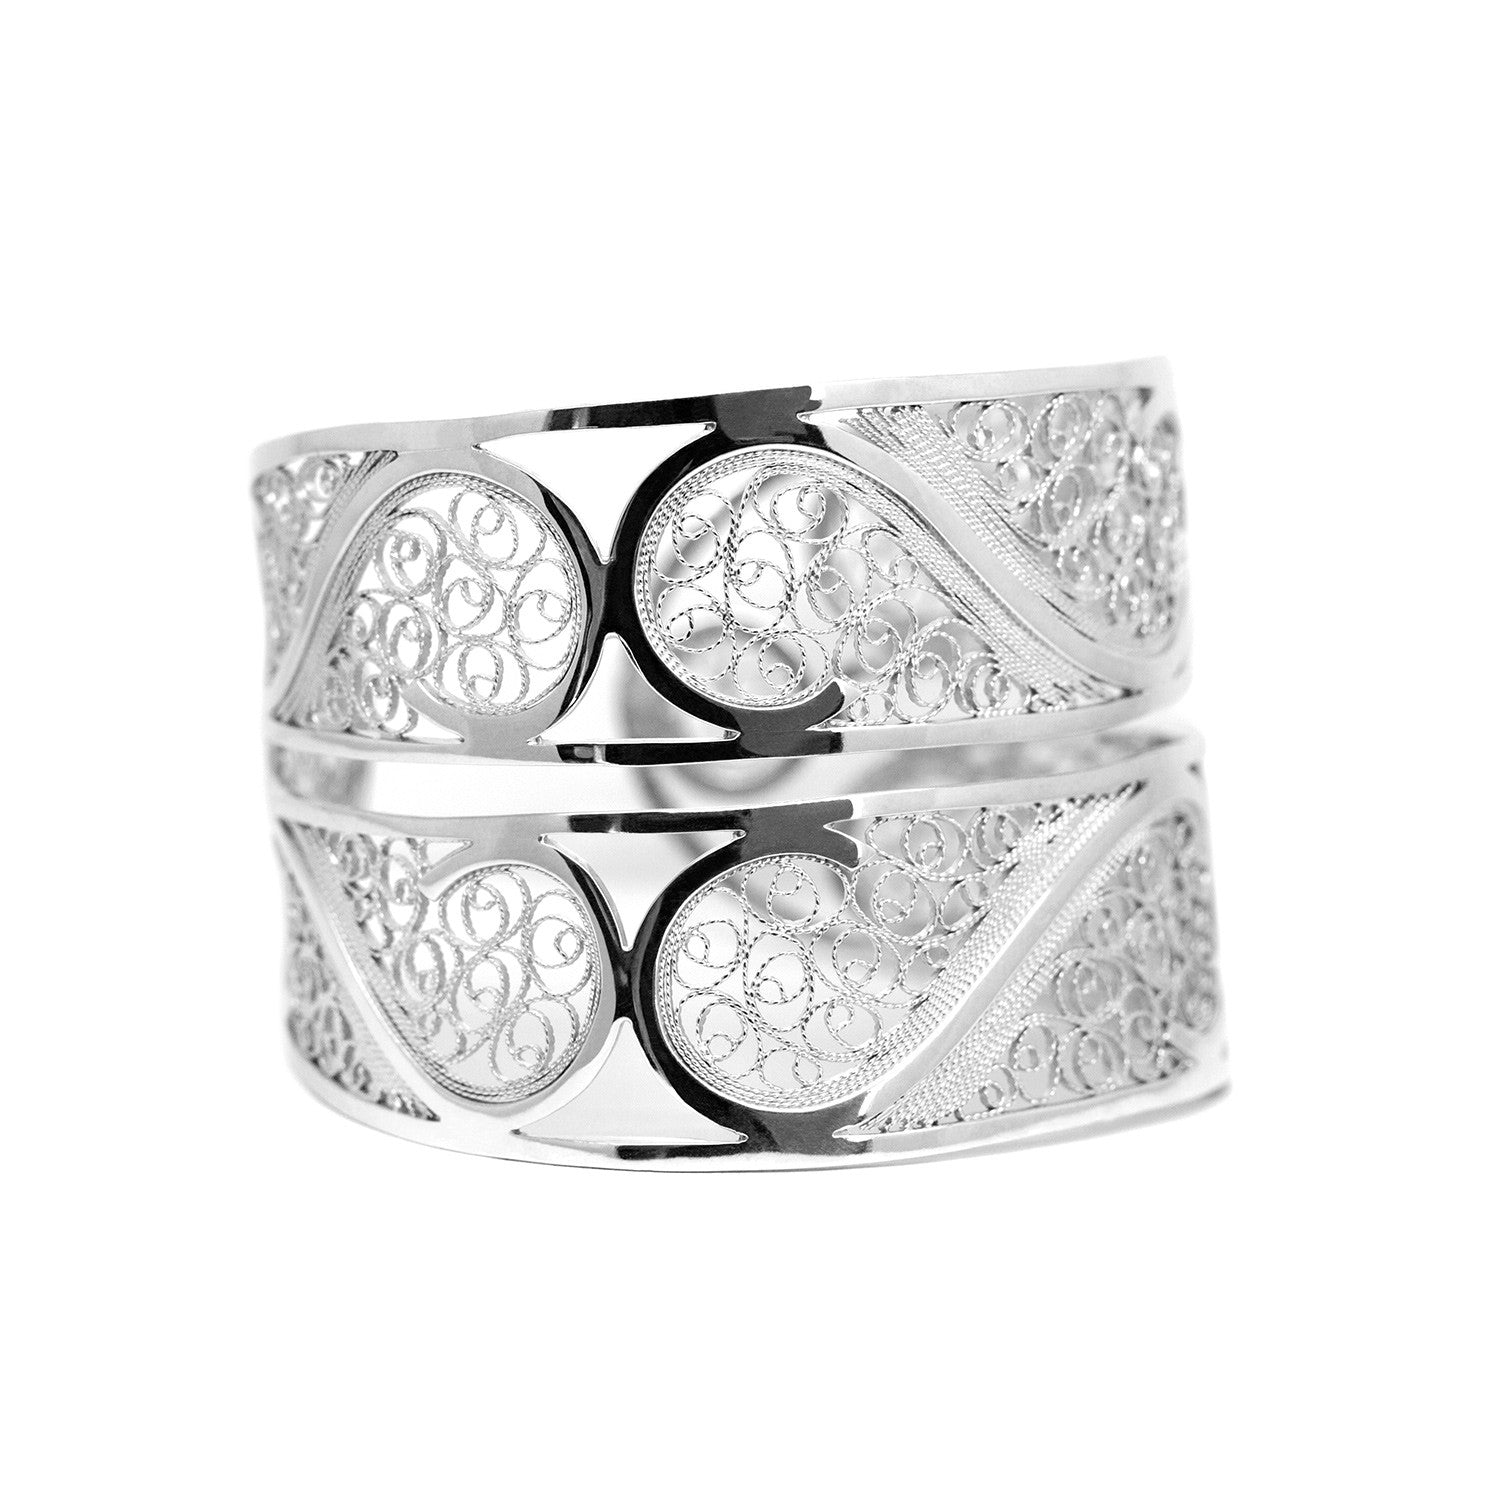 Filigree Links Bangle Bracelet. White - Arabel Lebrusan